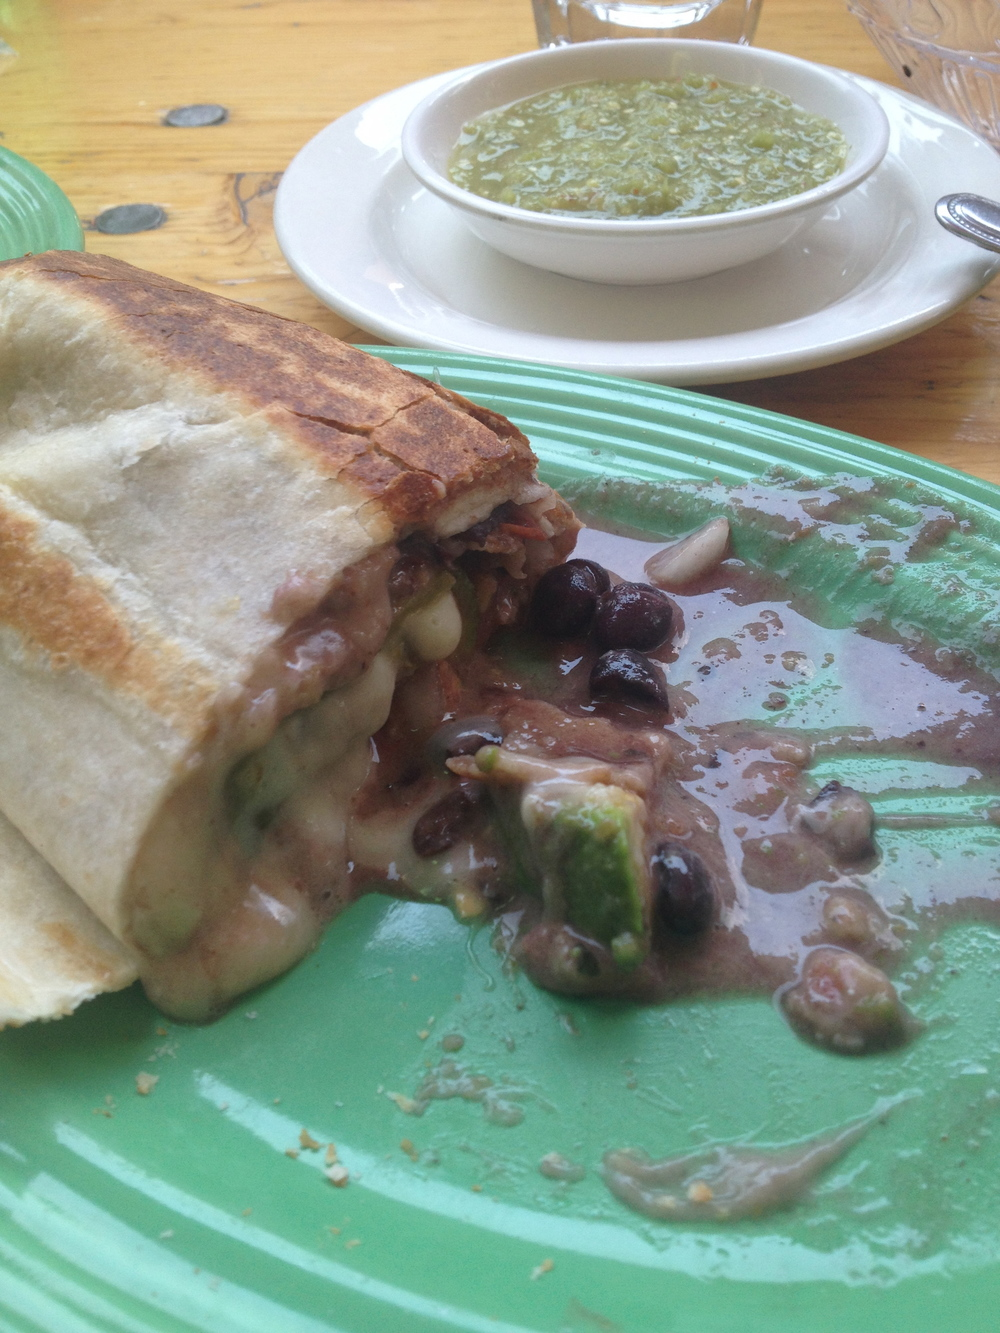 THE ENCHILADA BURRITO WITH TOMATILLO SALSA AT MISSION CANTINA NYC